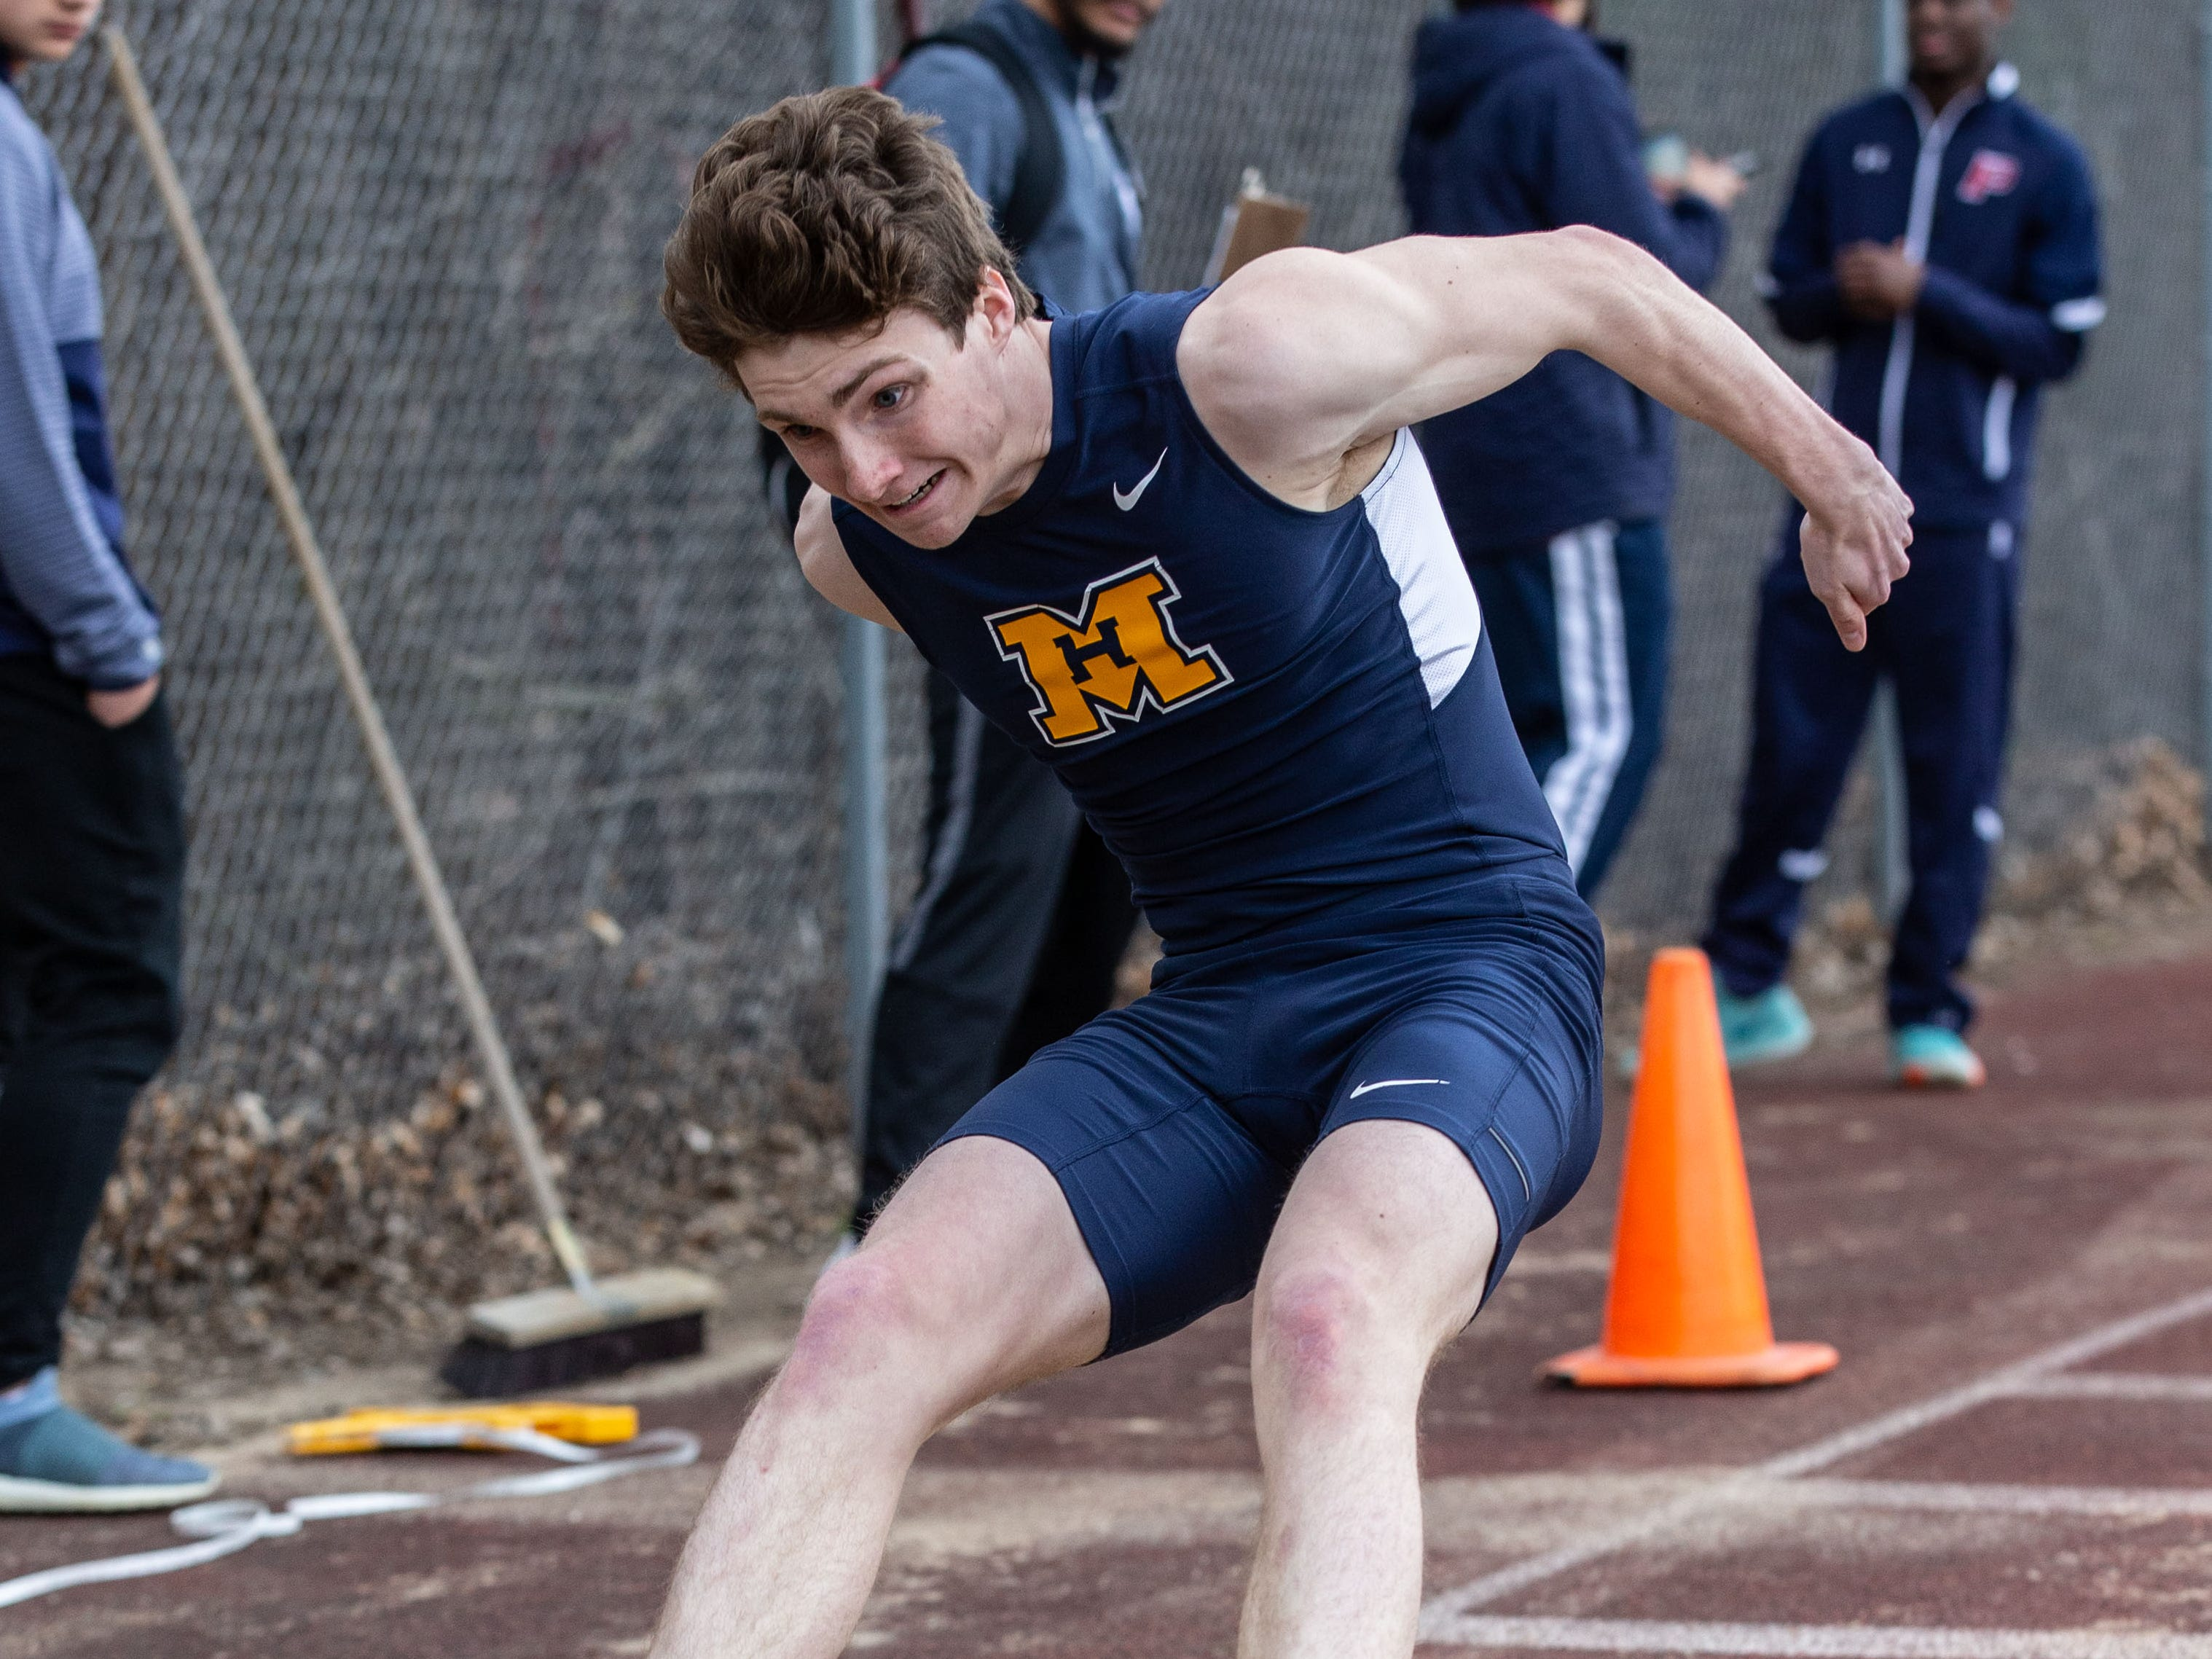 Marquette's Liam Martel competes in the long jump during the Mike Gain 50th Annual Spartan Invitational at Brookfield East on Tuesday, April 9, 2019.